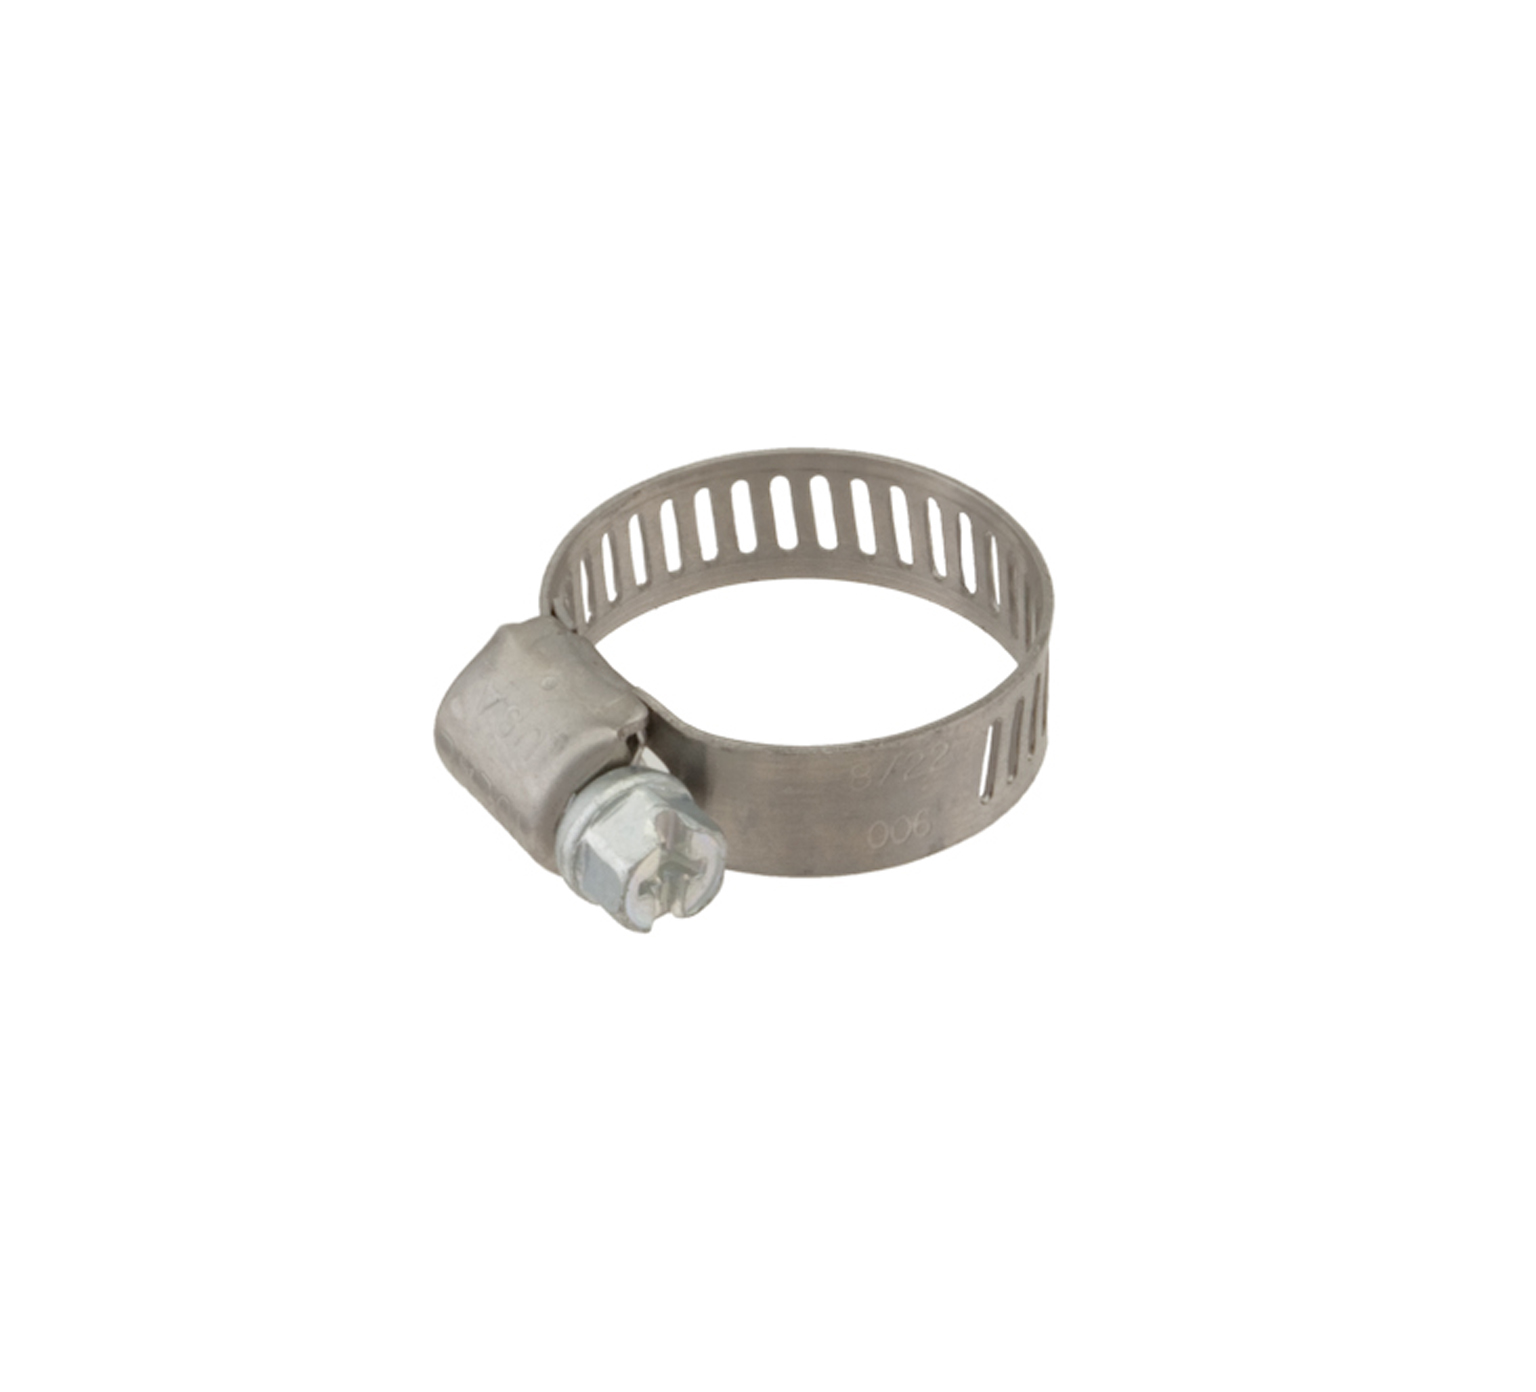 54333 Stainless Steel Hose Clamp - 0.31 - 0.88 in x 0.31 in alt 1